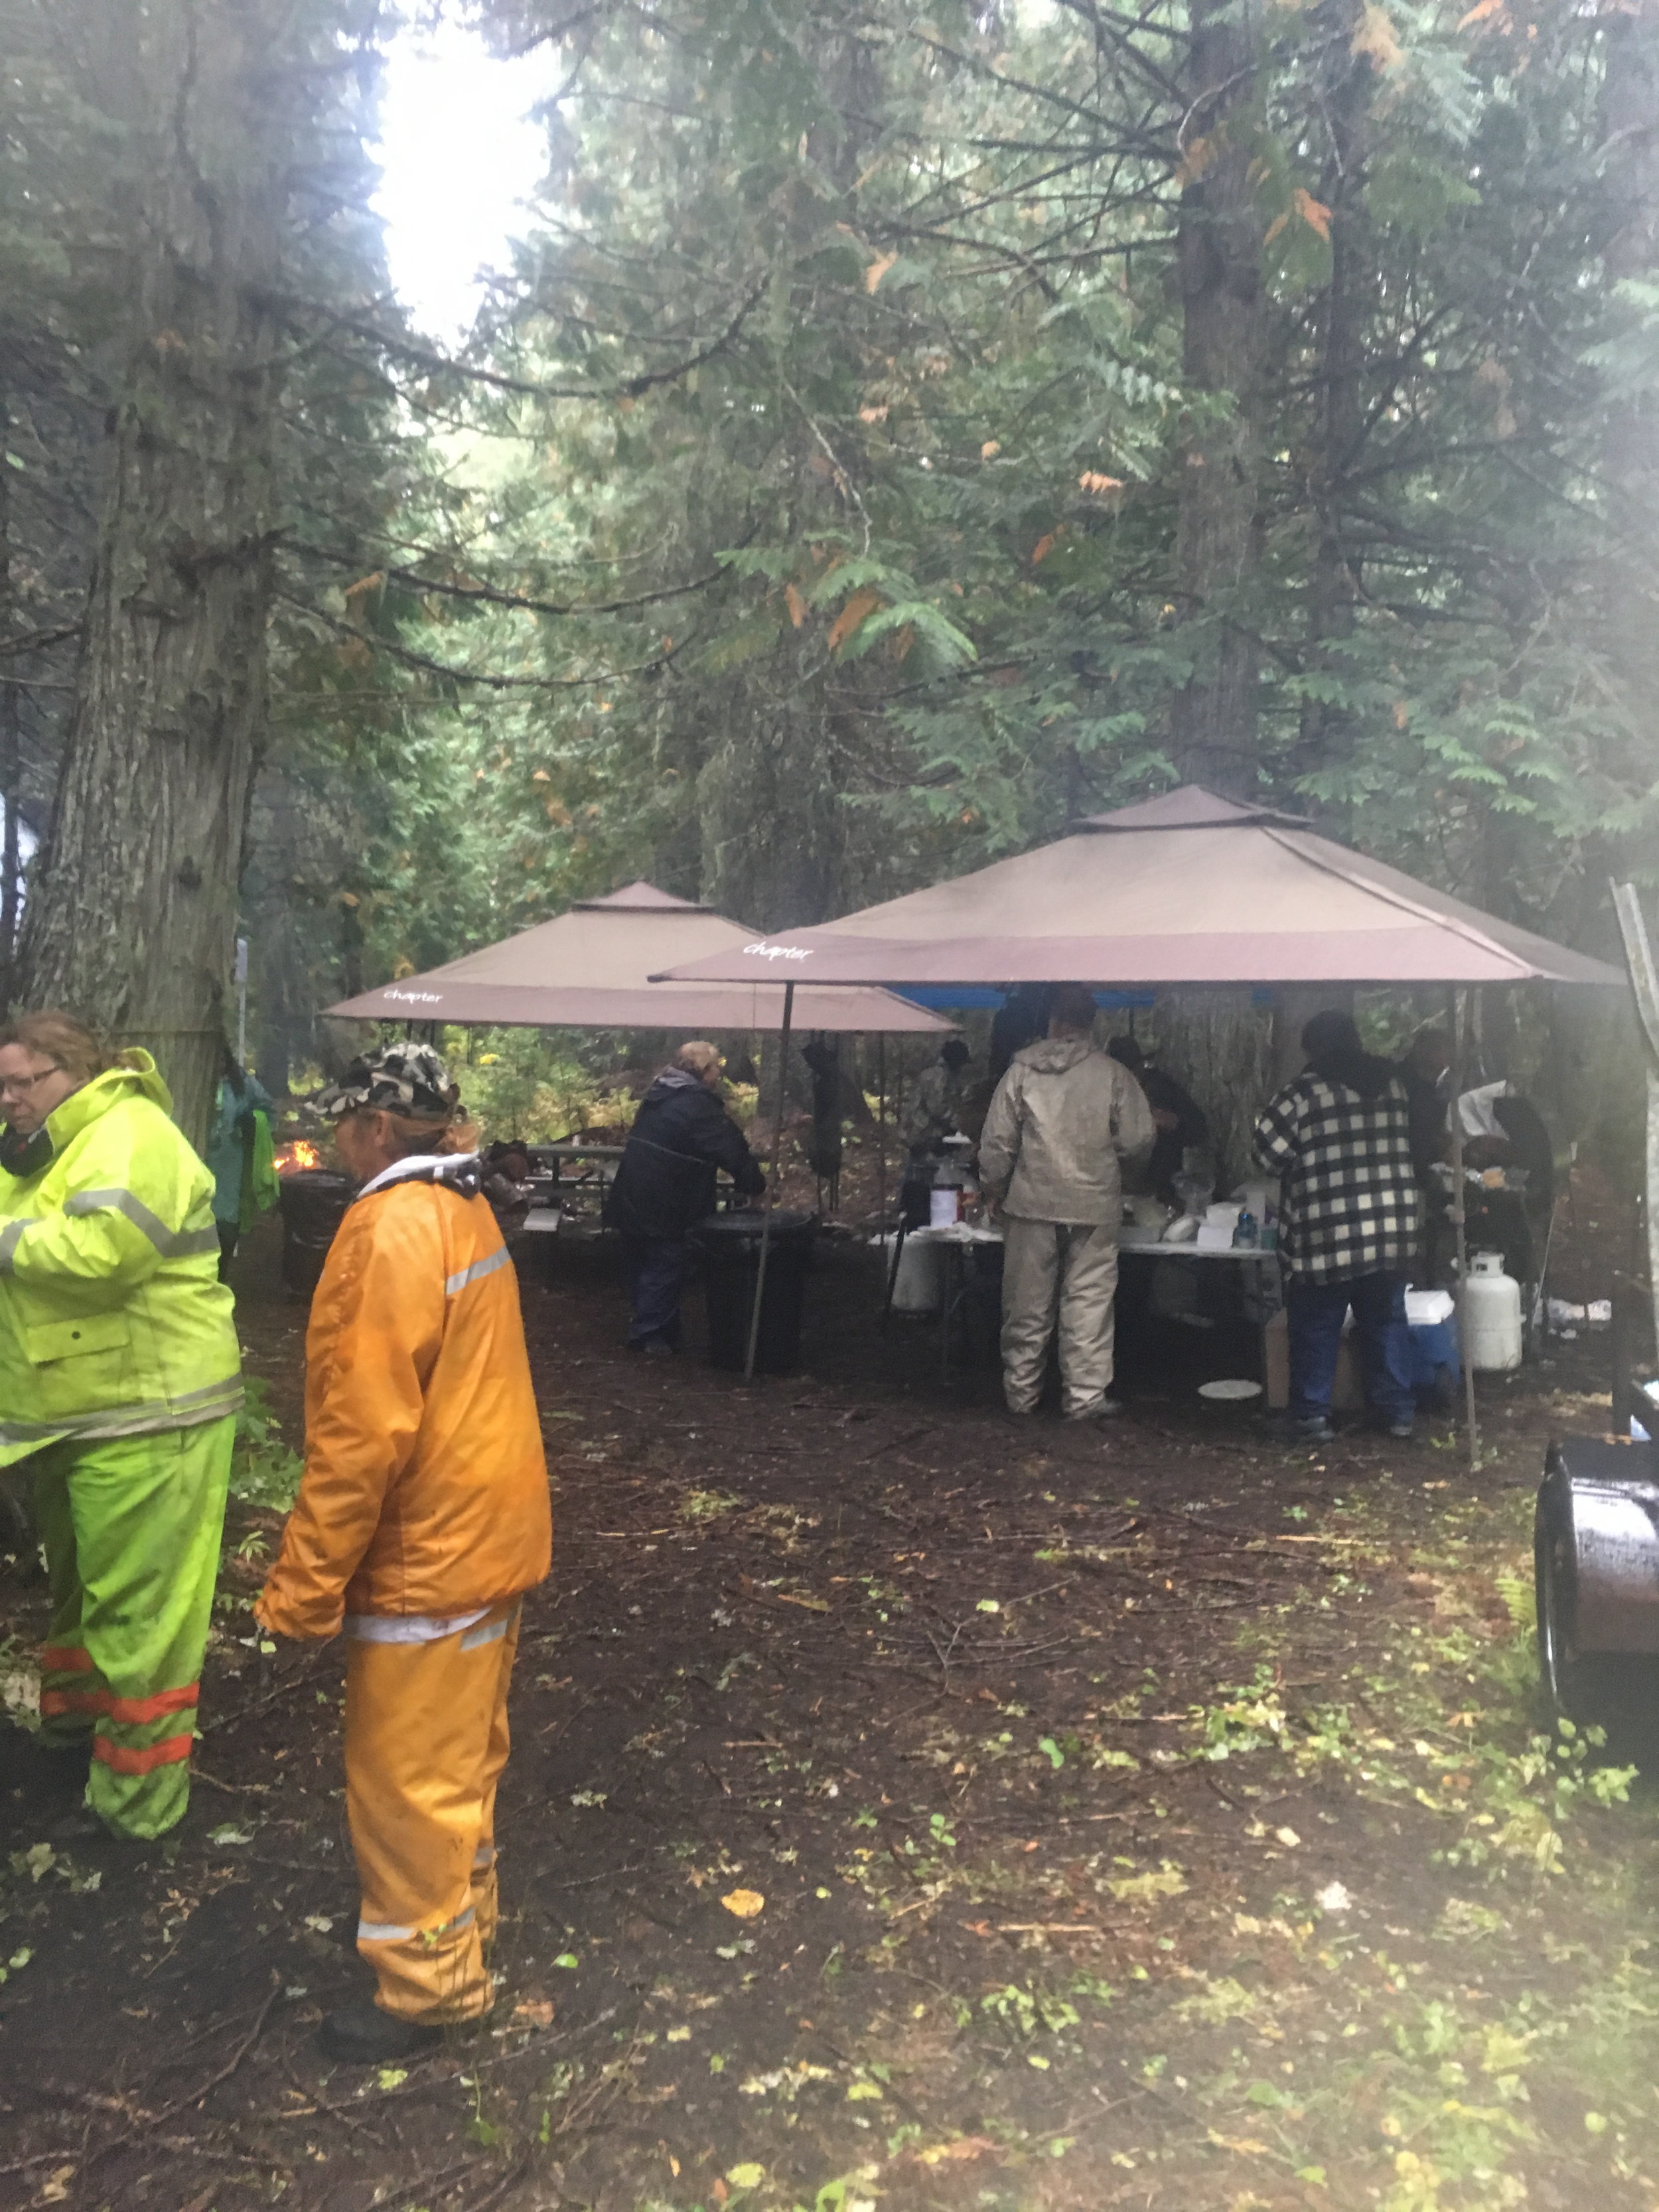 Lunch in the woods. The Selkirk Trail Blazers, Dirty Divas.